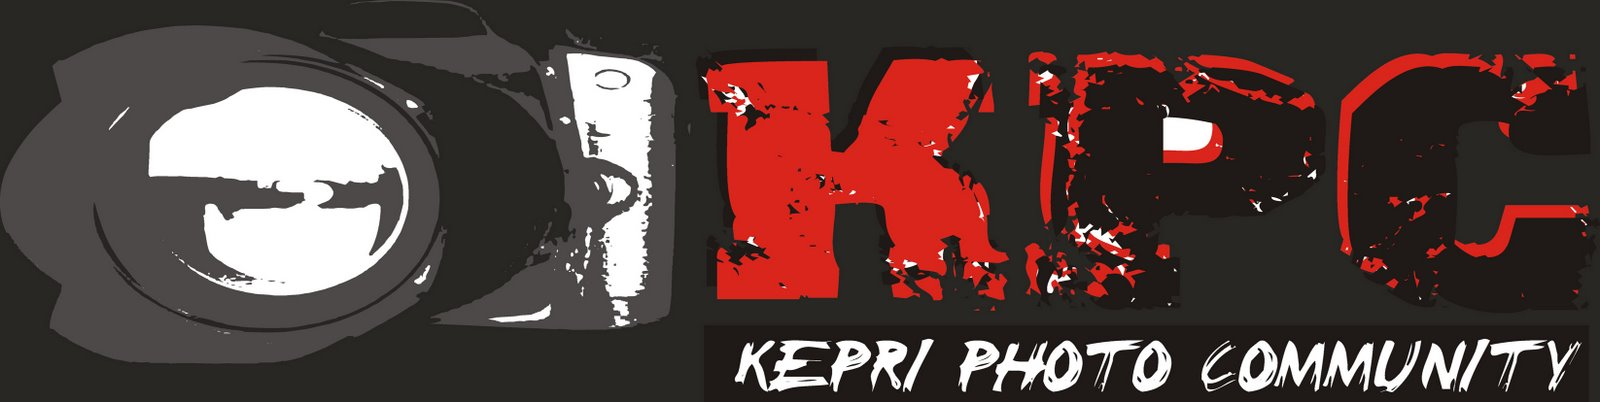 Kepri Photo Community